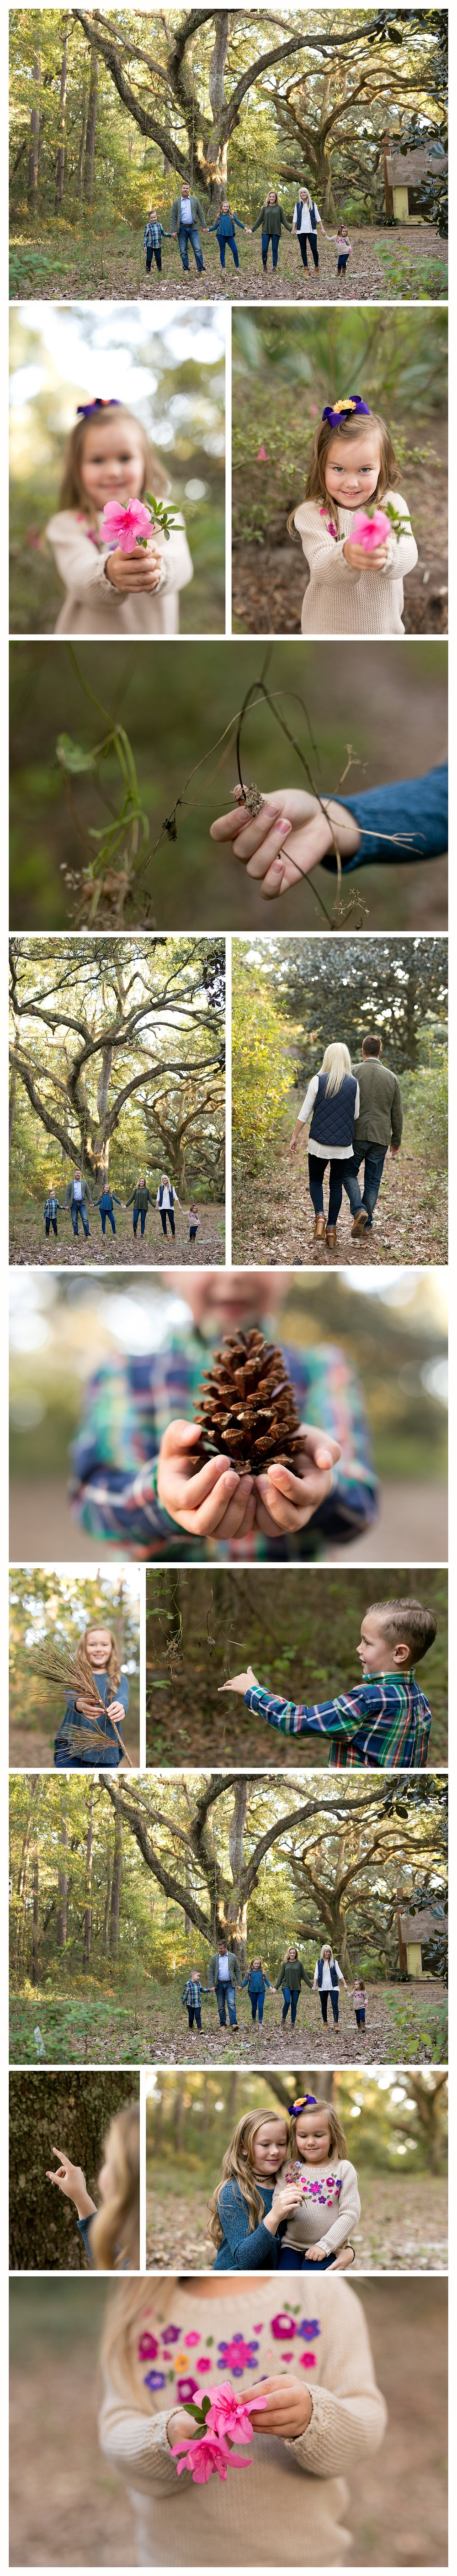 outdoor lifestyle family photos, climbing trees and playing outside with flowers and pine cone